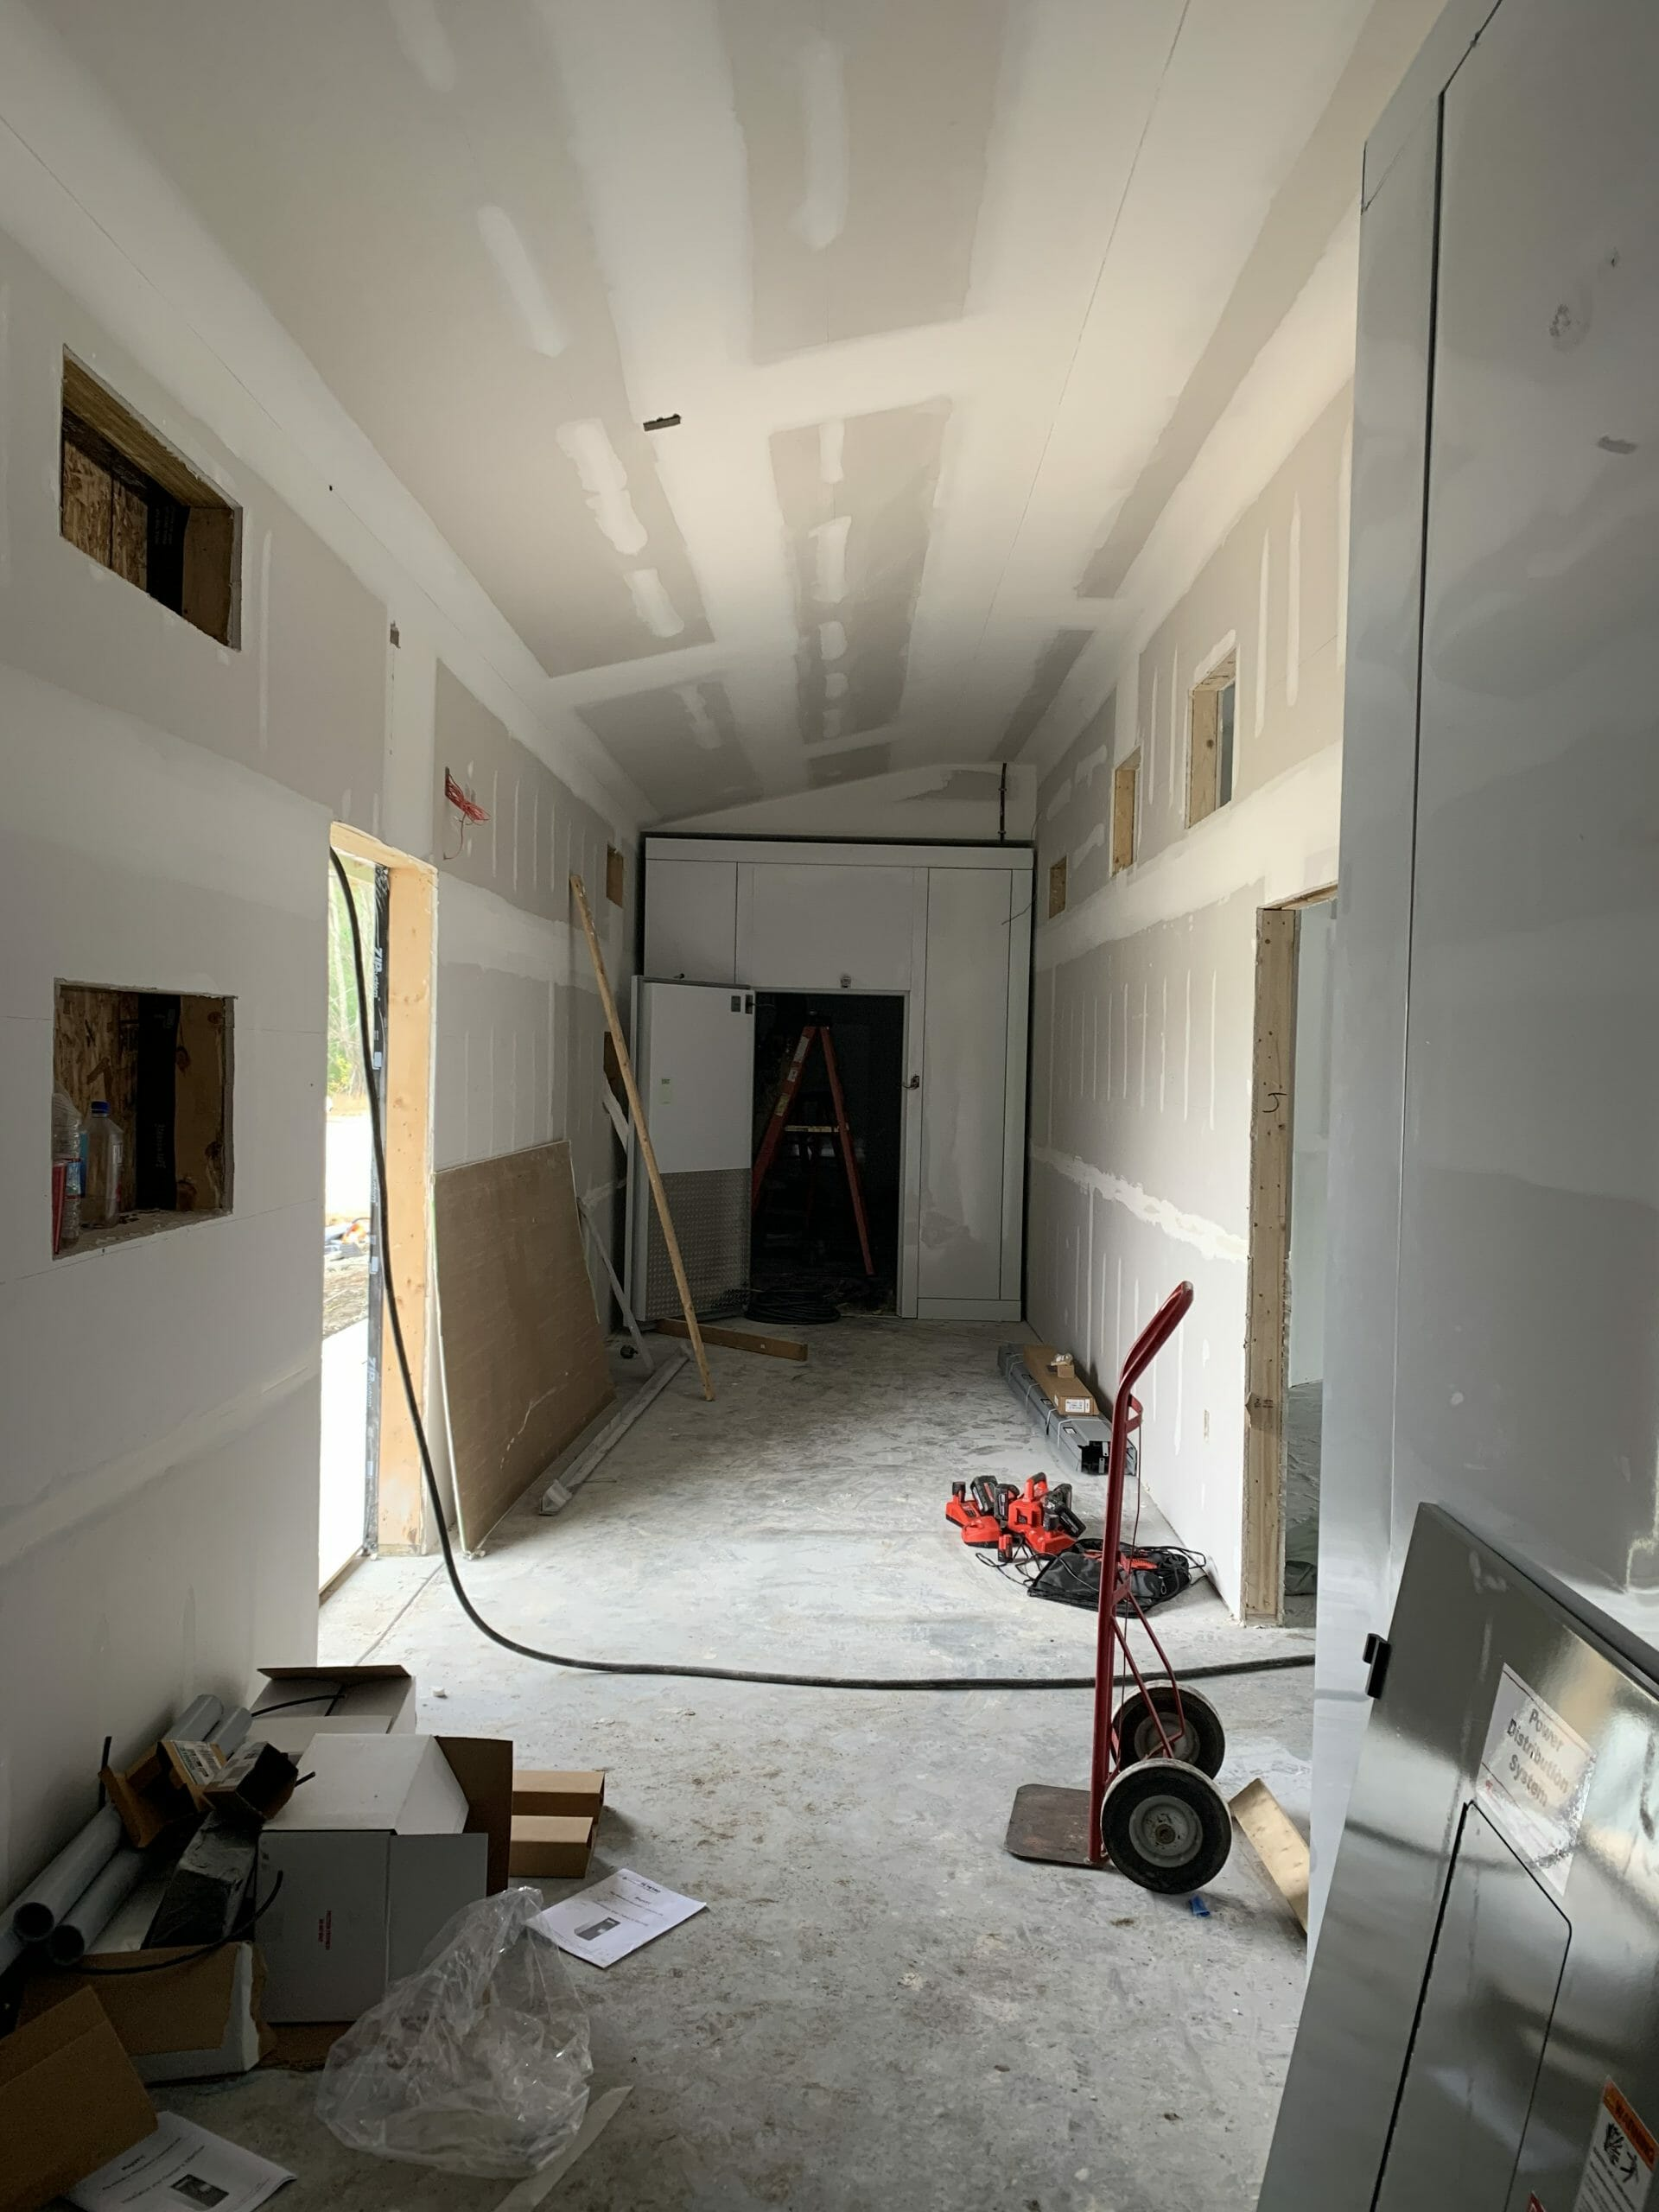 Back room with unfinished drywall